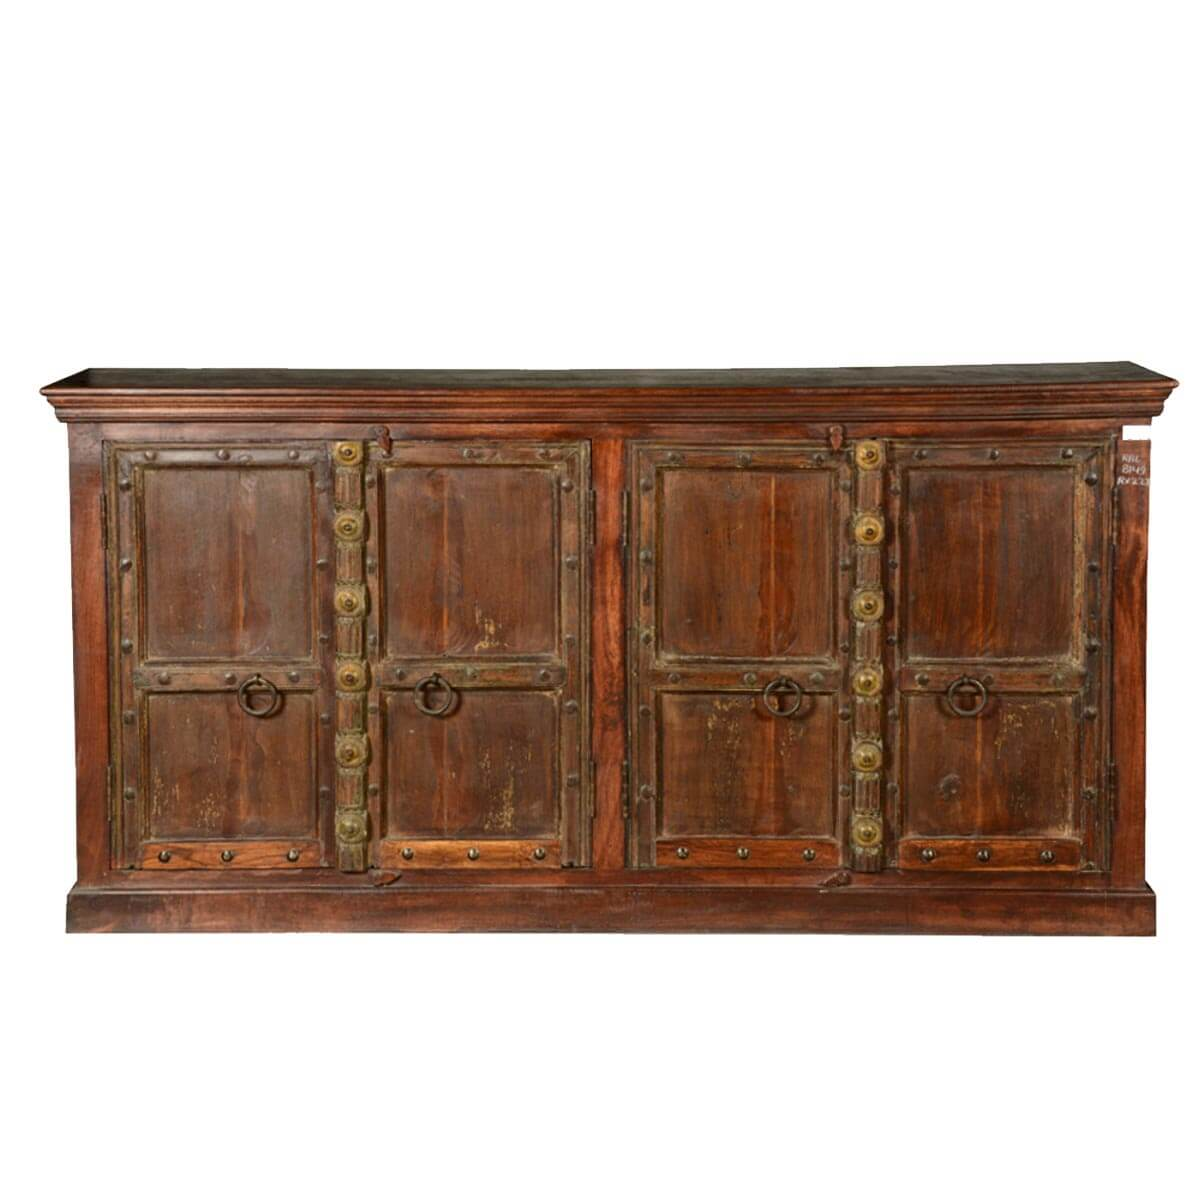 Gothic Traditions Reclaimed Wood Large Sideboard